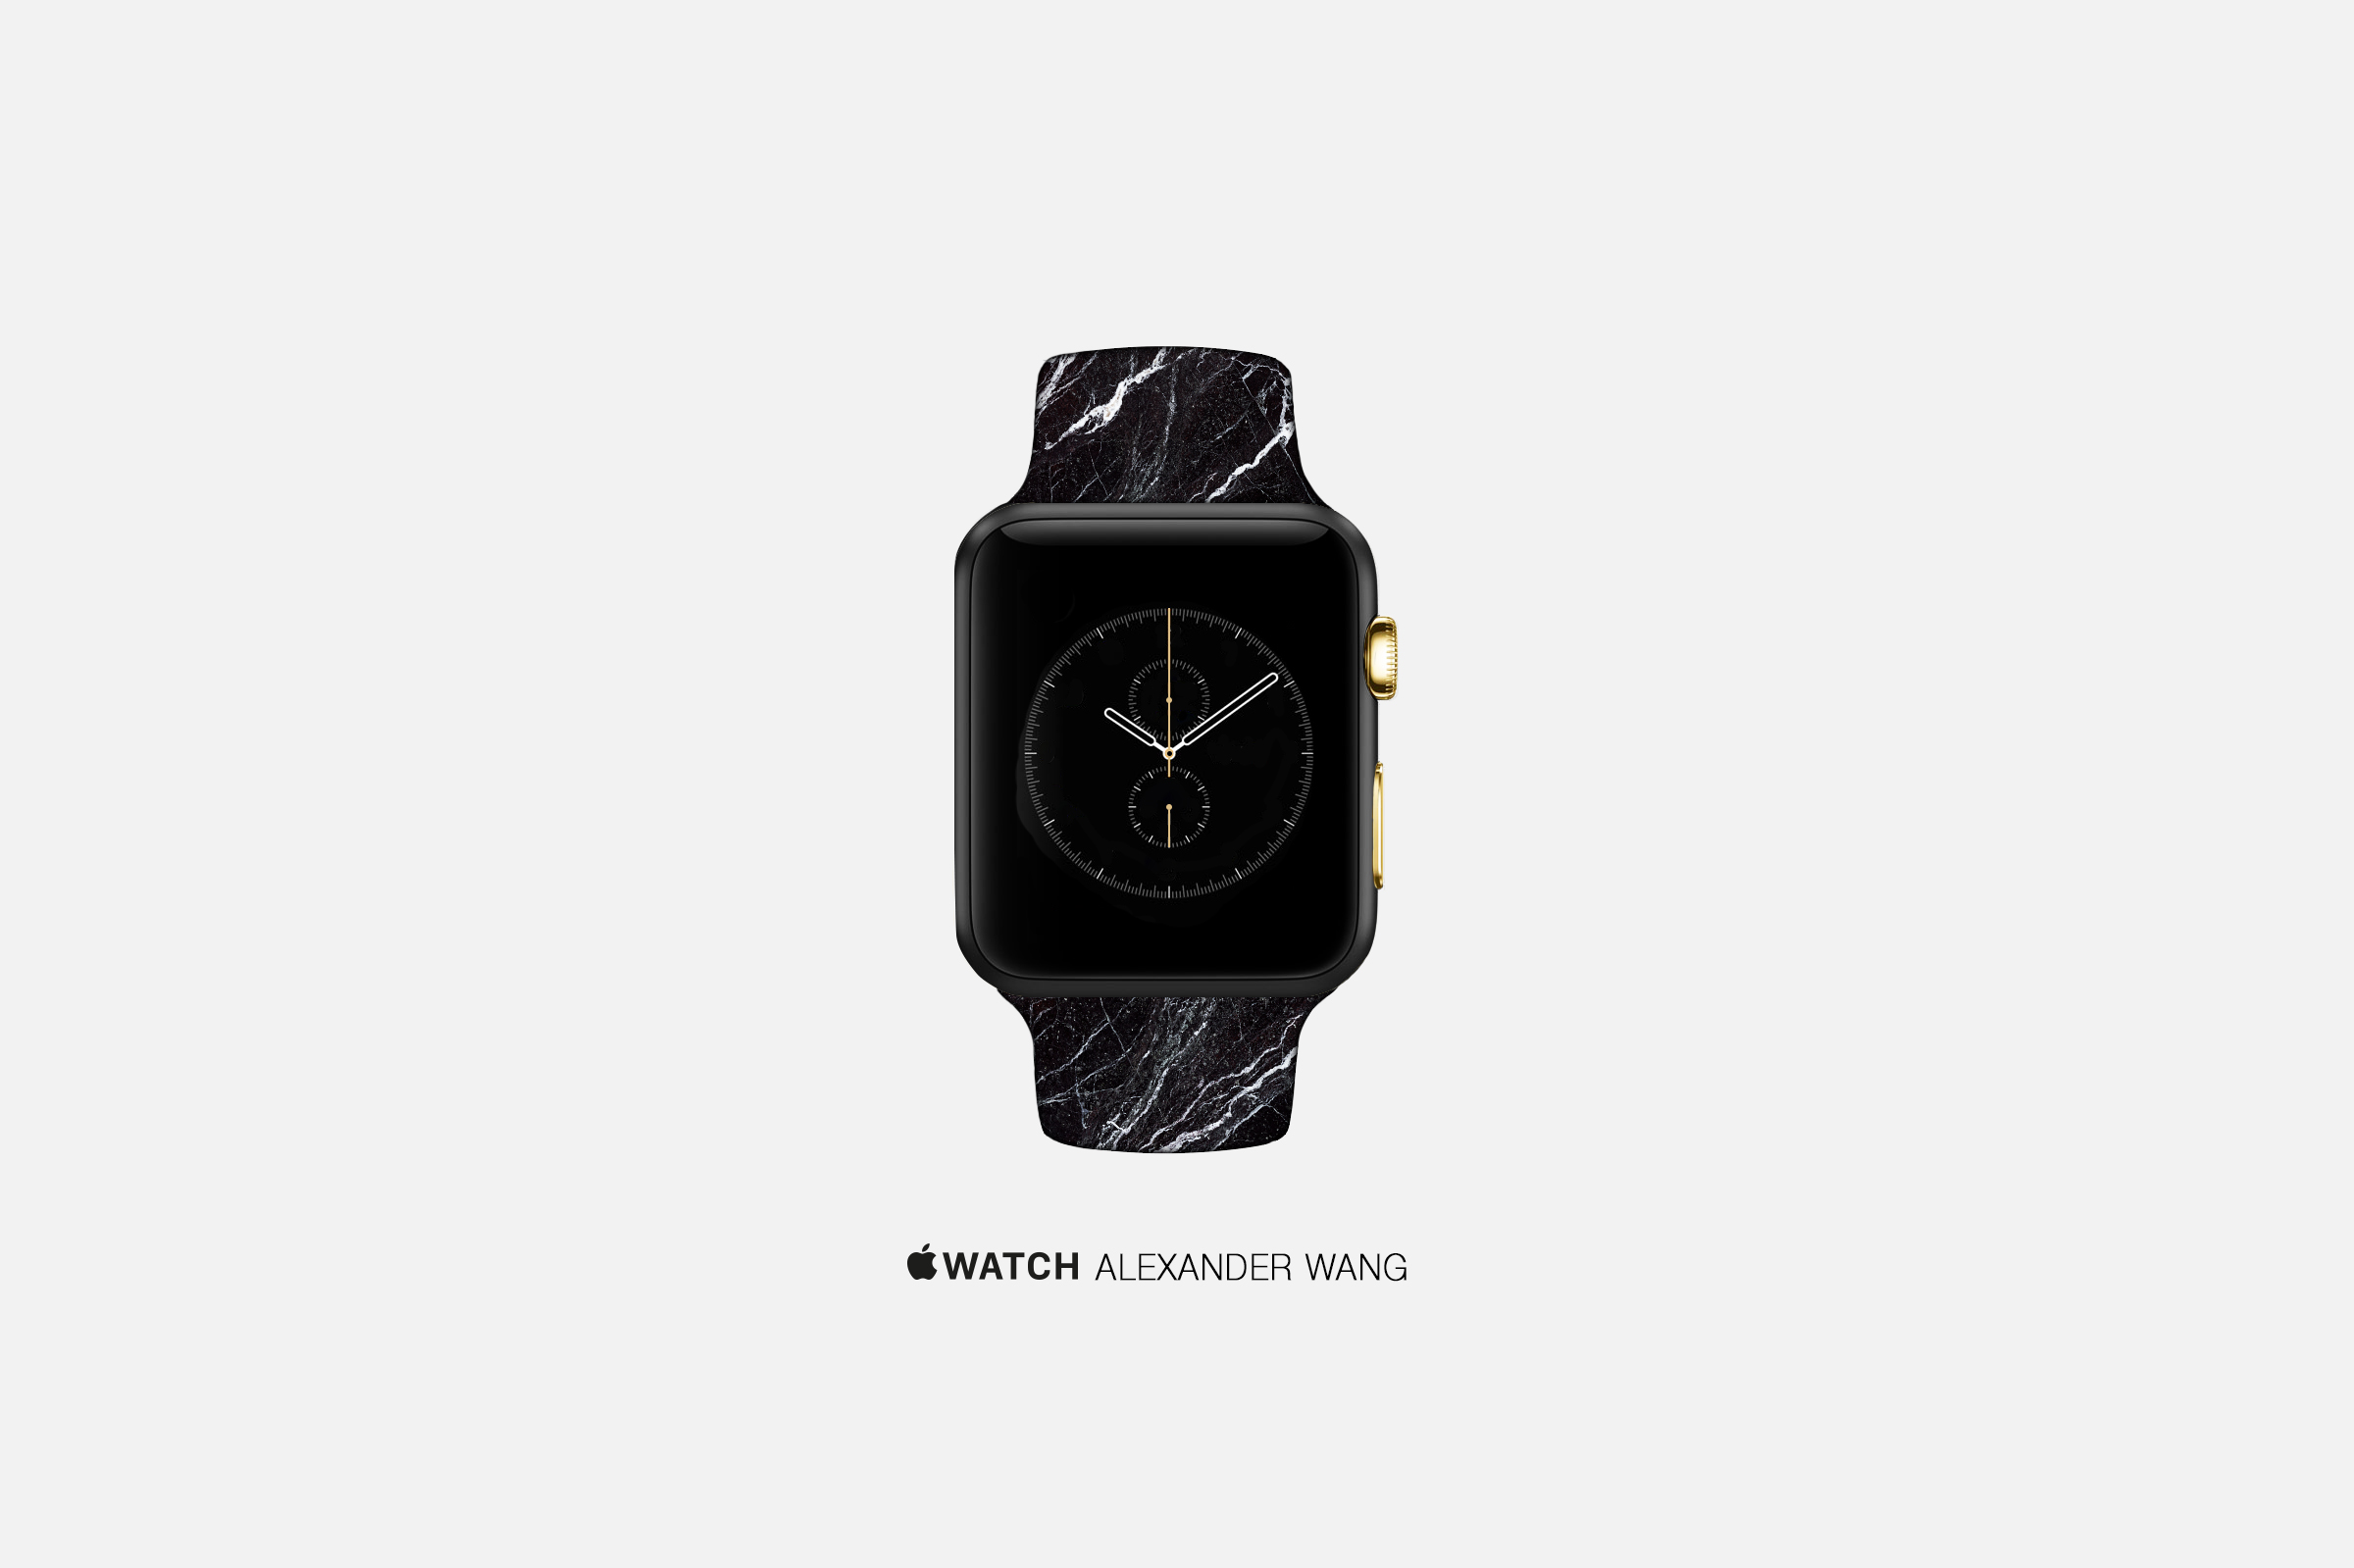 An artist's concept of an Apple Watch by Alexander Wang.